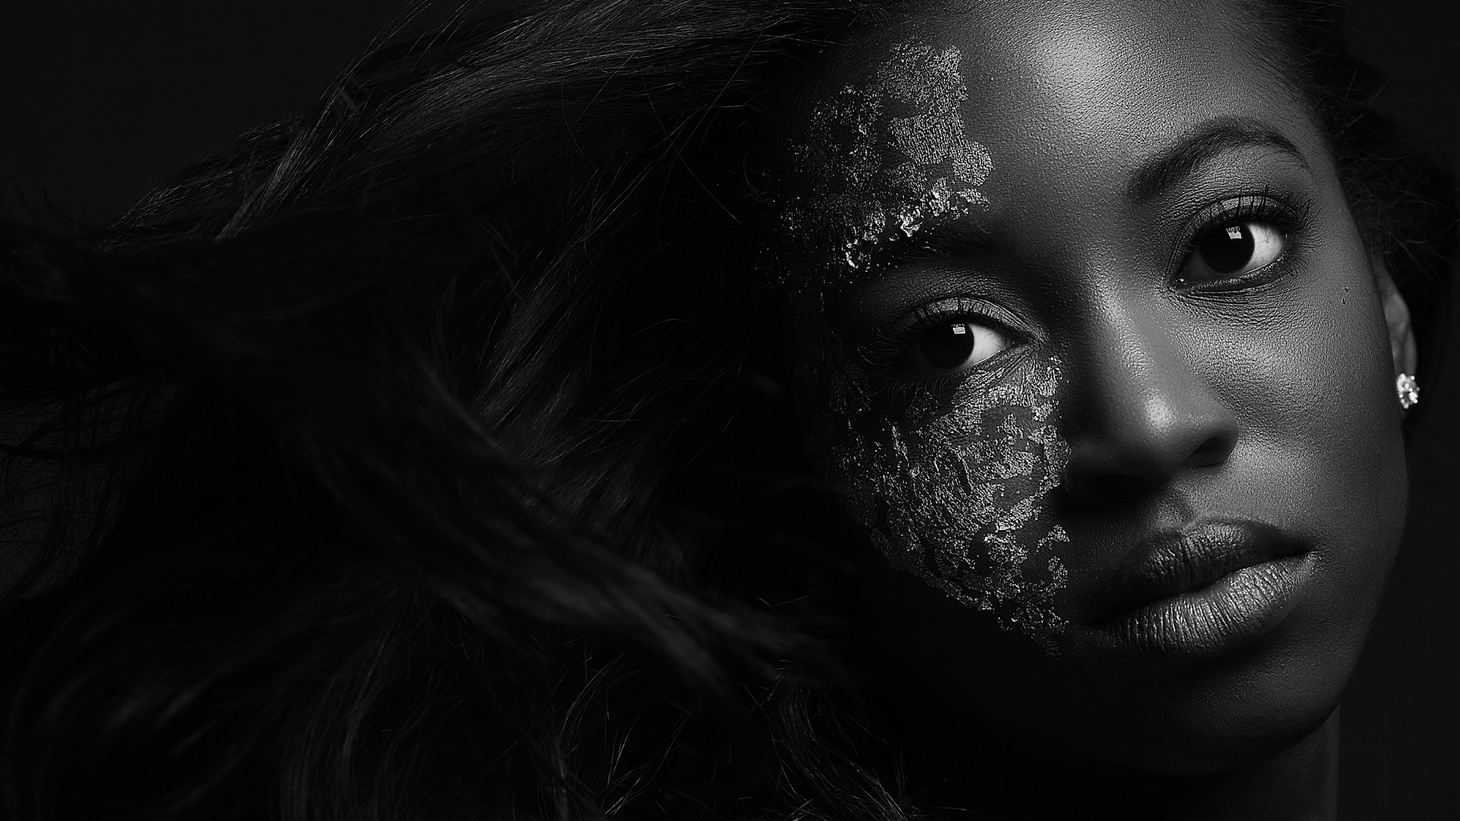 """""""Conceal to reveal. In life as humans, we face numerous battles that many of us never thought we would see an end to. But those moments in time have created scars that reveal the beauty of self and narrative, allowing you to shine through what had been some of your darkest times. Rock the scars that made you,"""" says Toya Golden."""